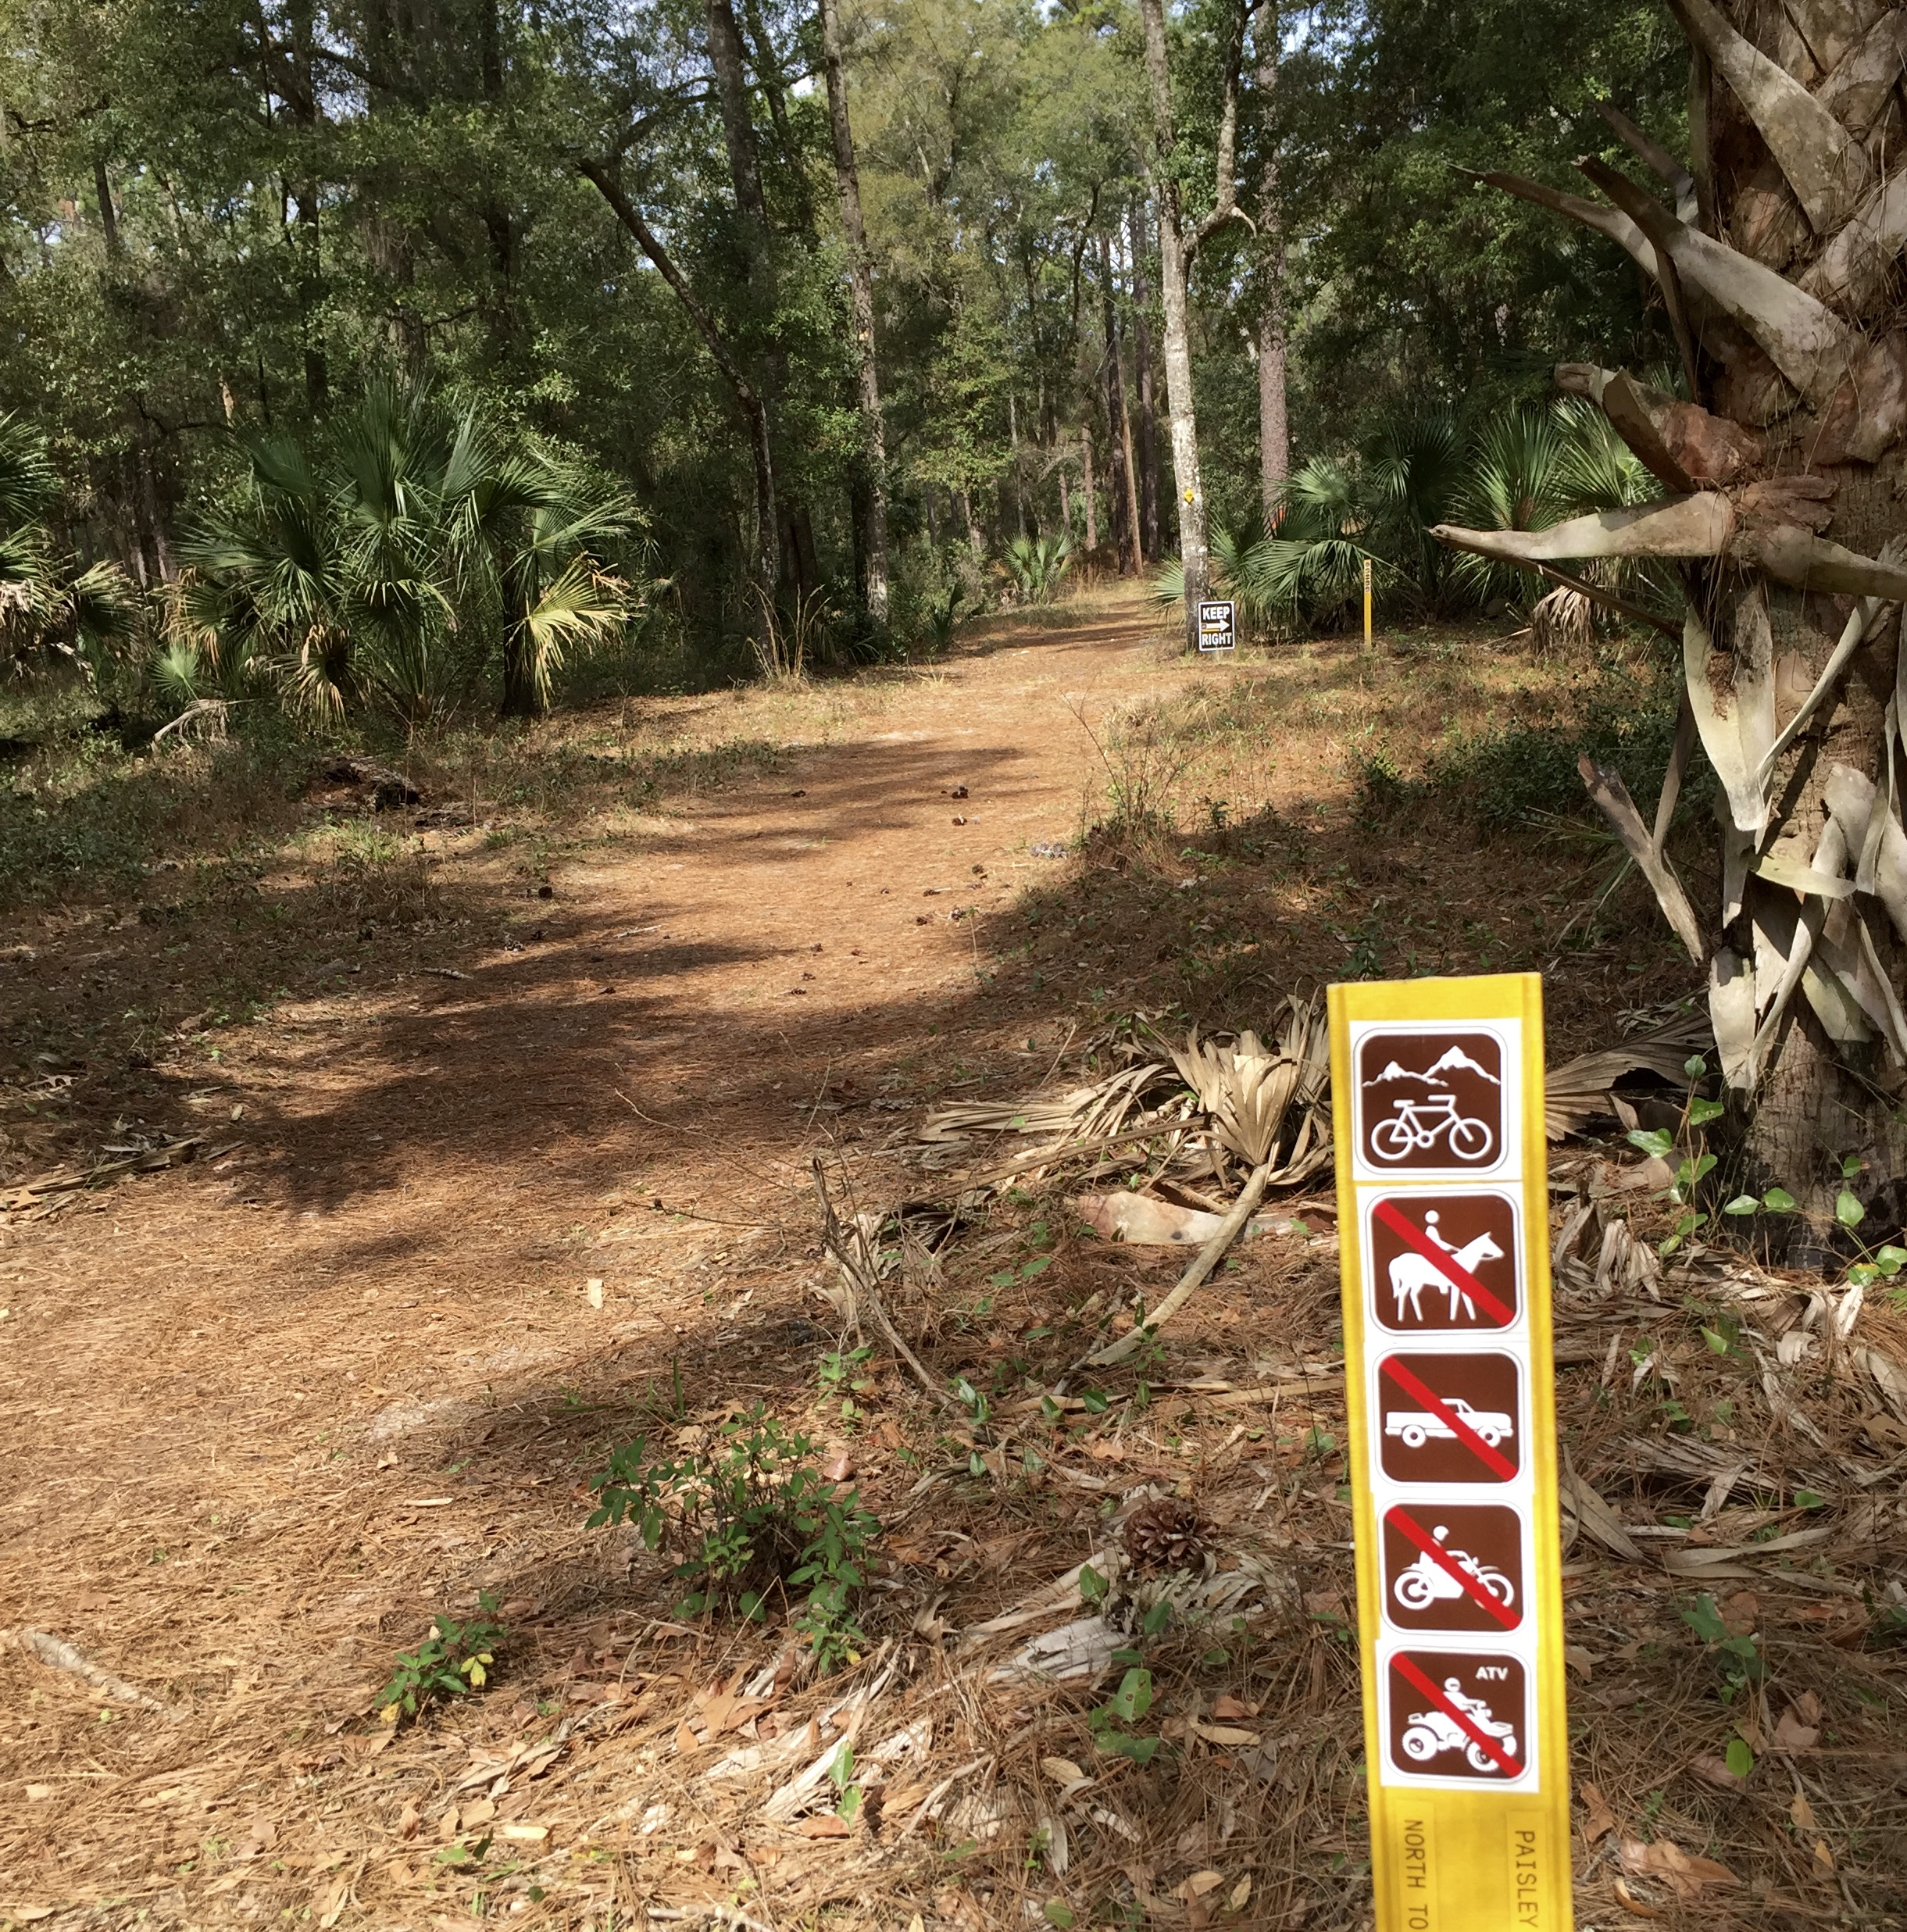 Mountain bike trail in Ocala National Forest.